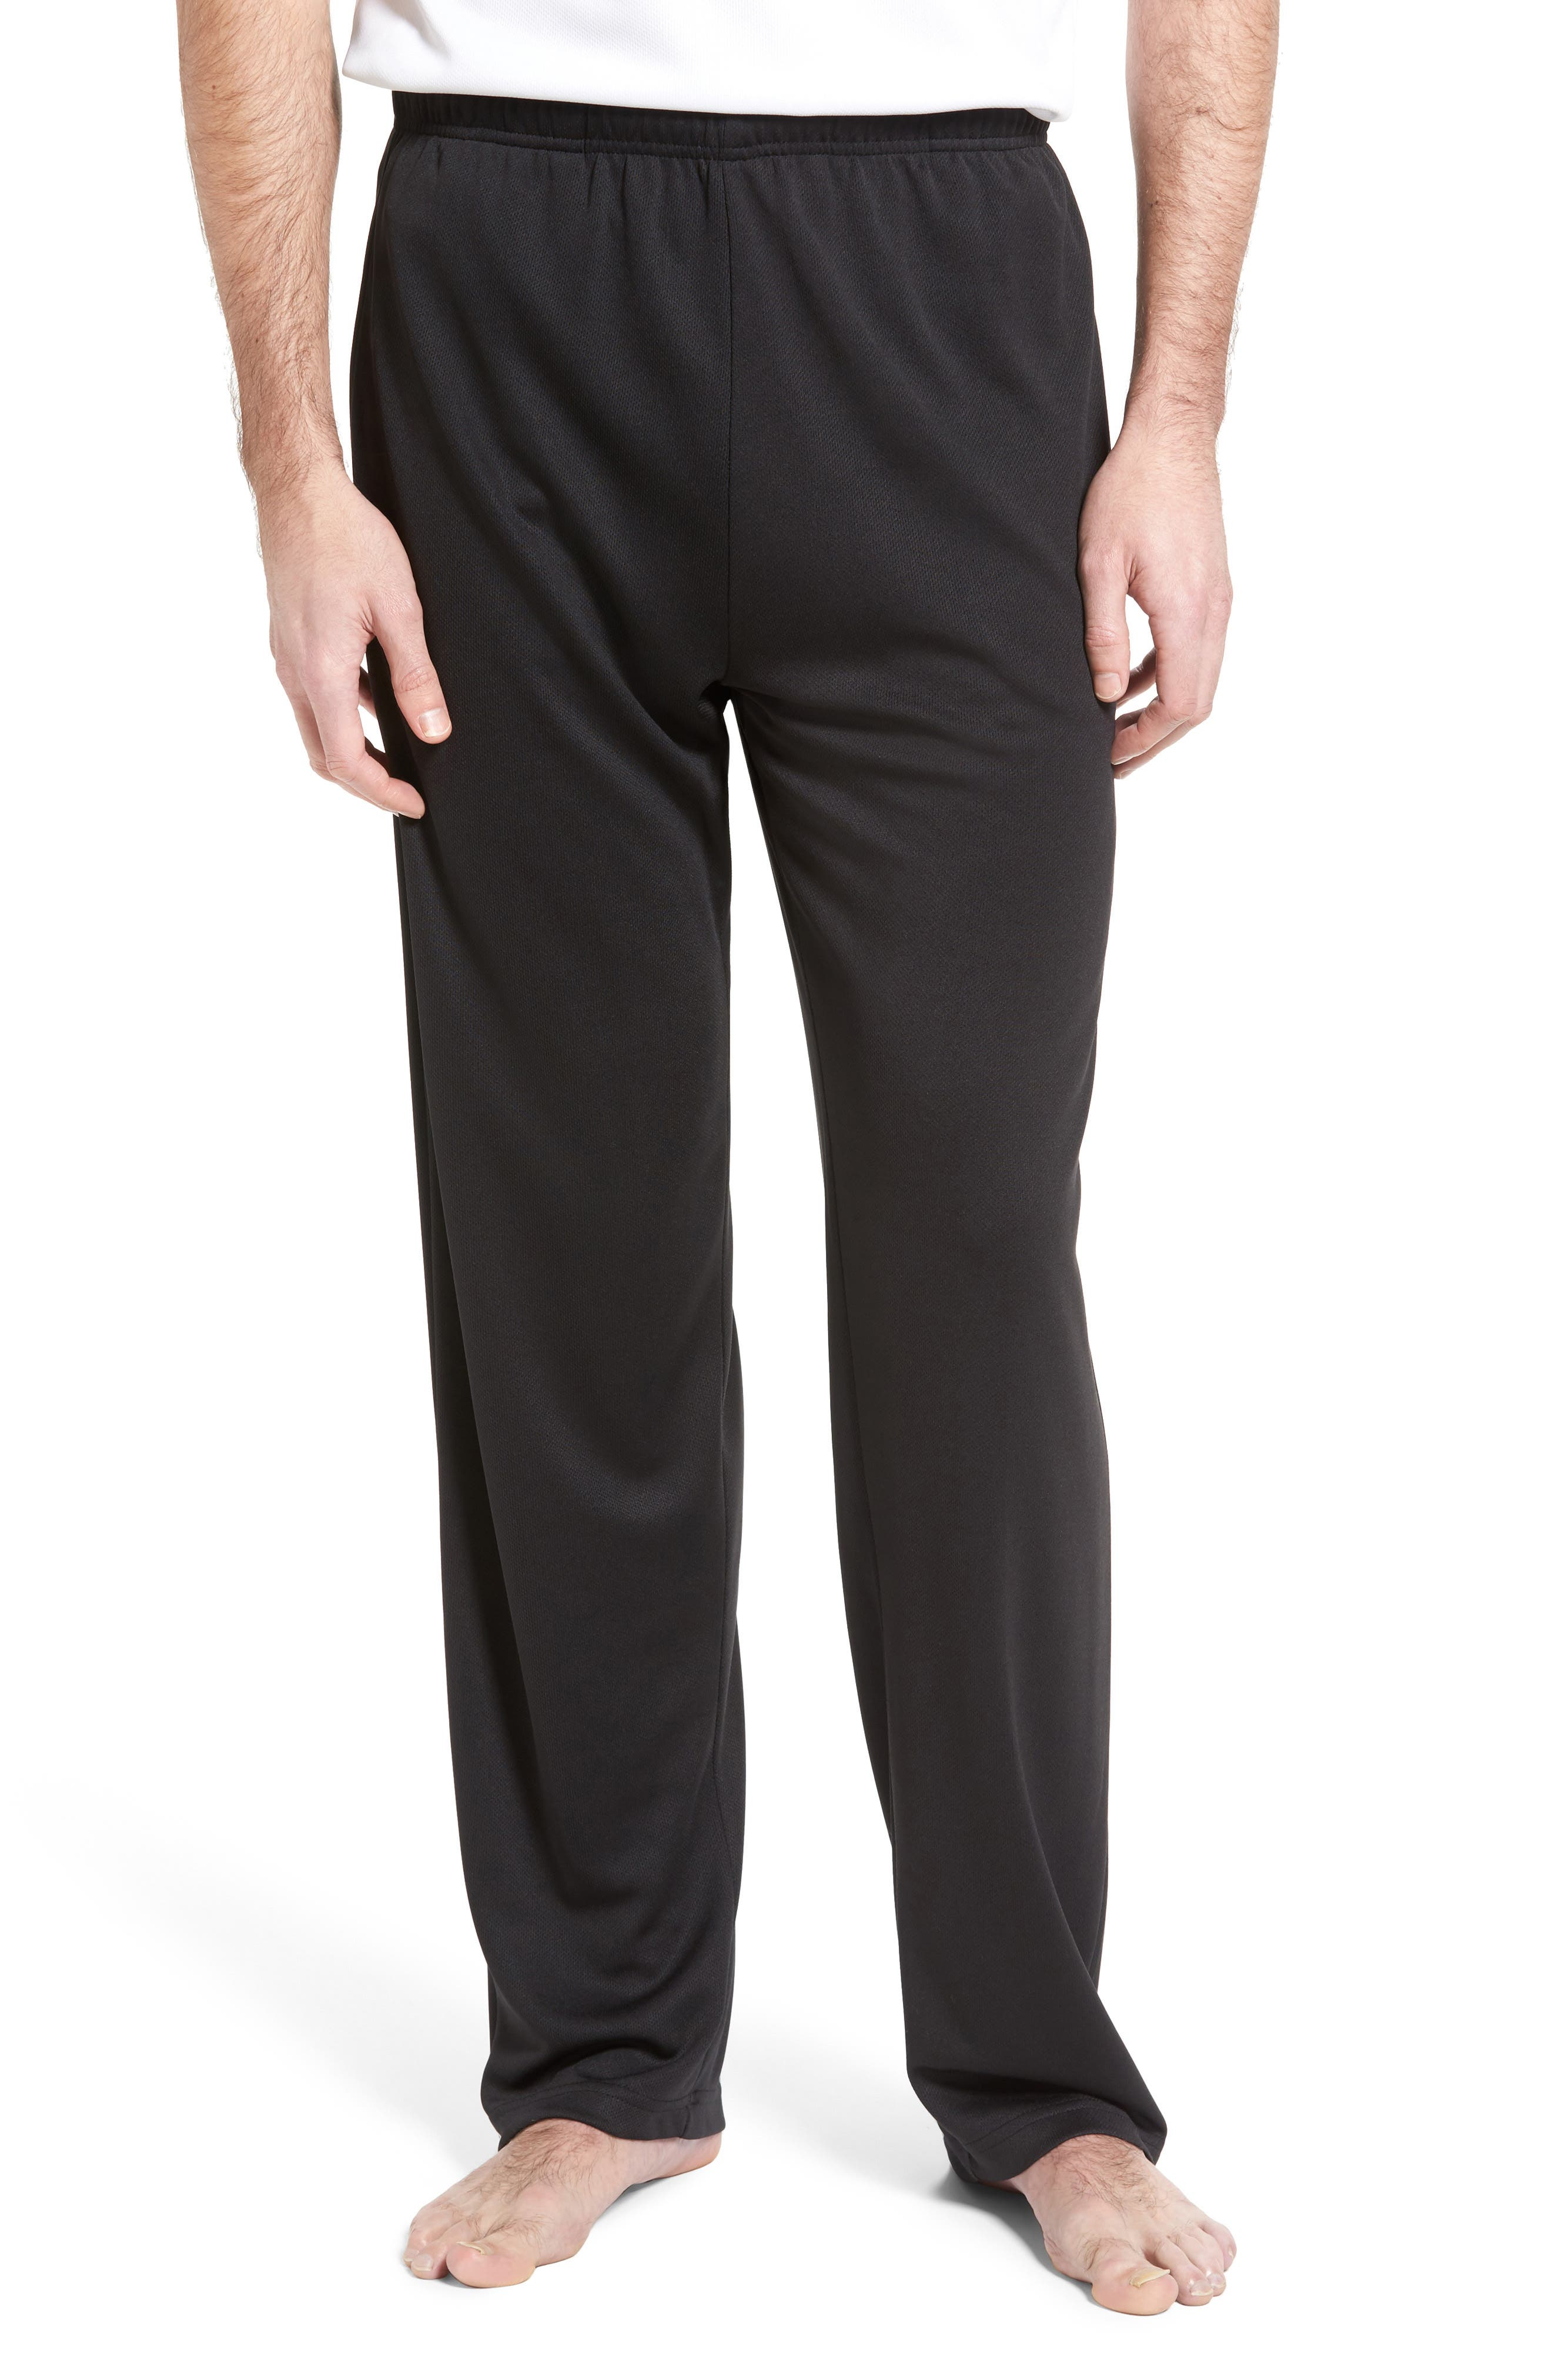 Work Out Lounge Pants,                         Main,                         color,